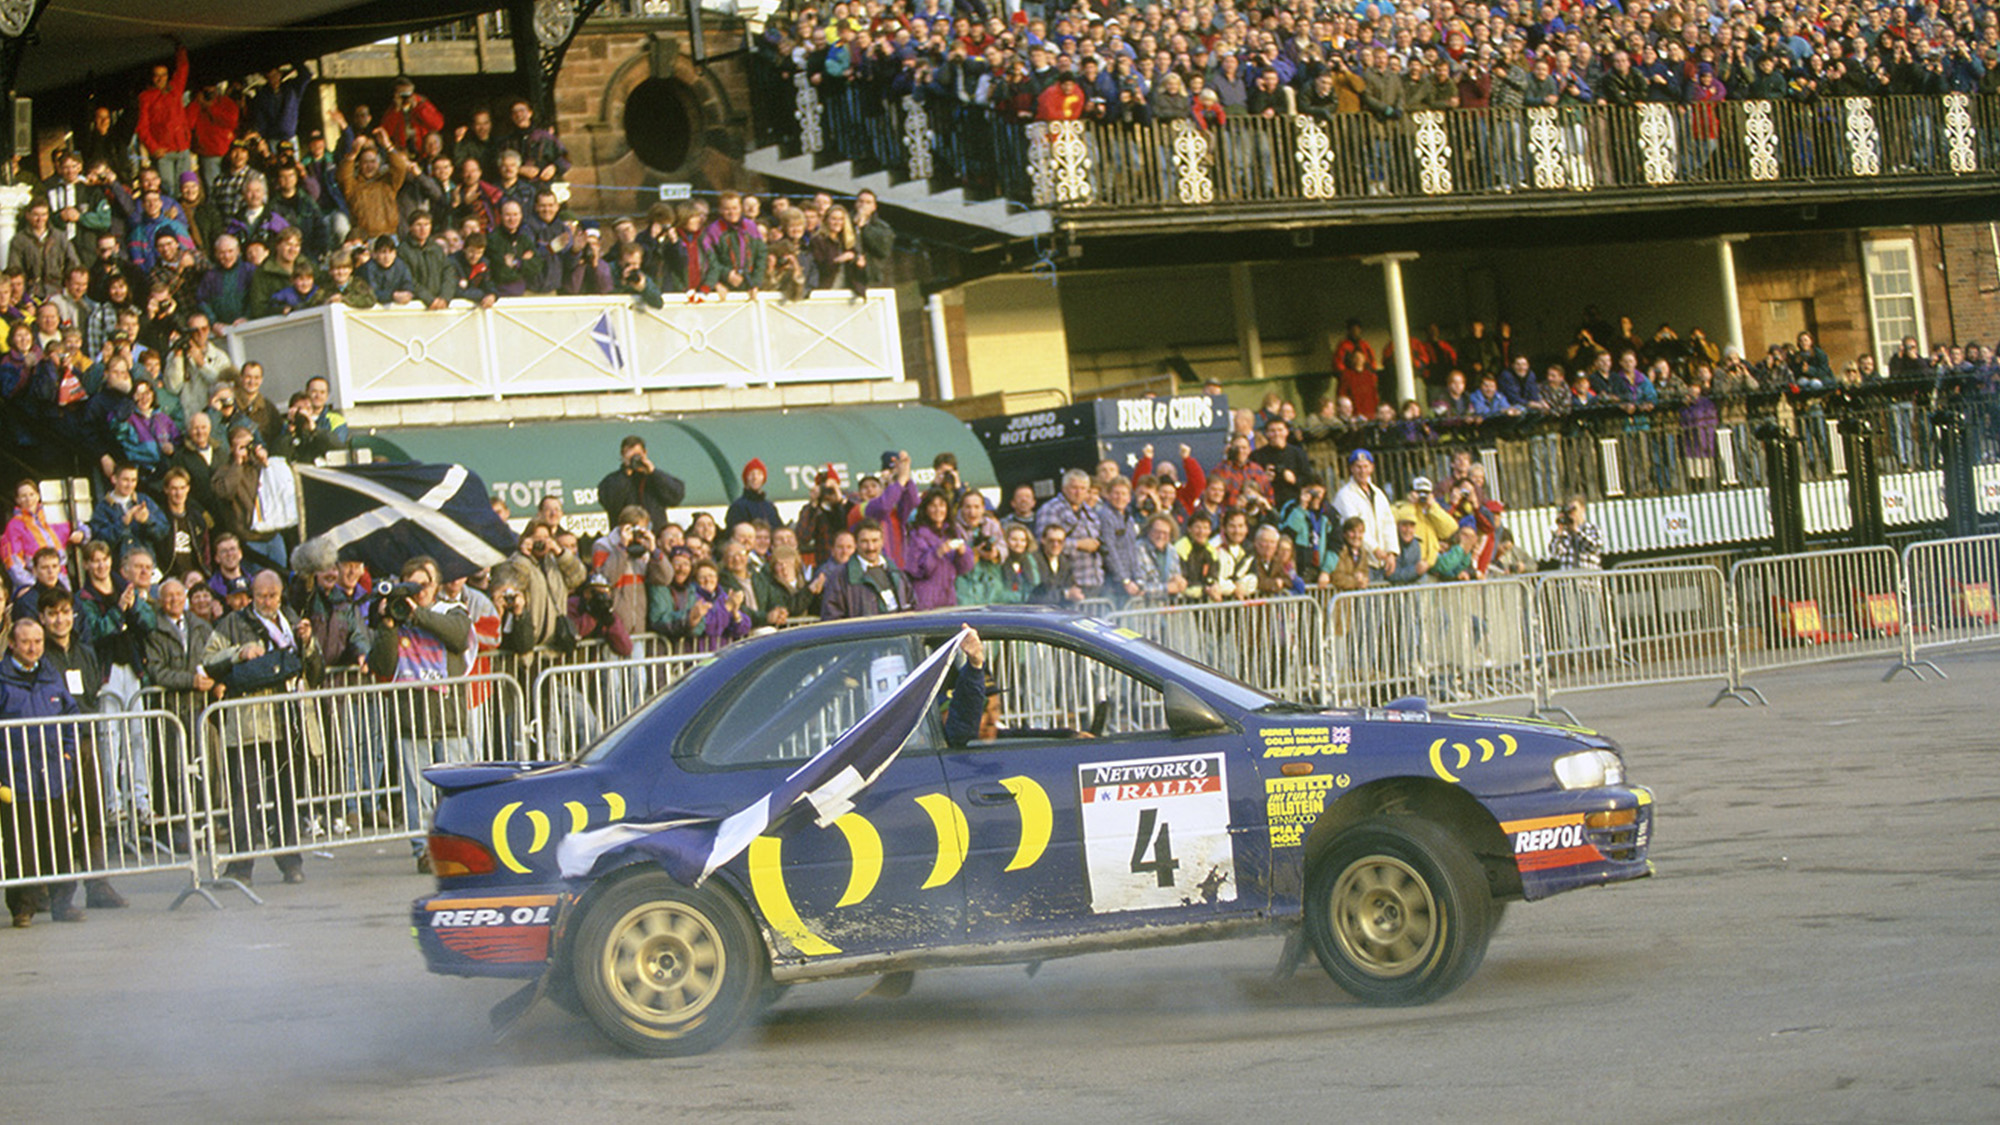 Colin McRae parades in front of the Chester Racecourse crowd after winning the 1995 RAC Rally